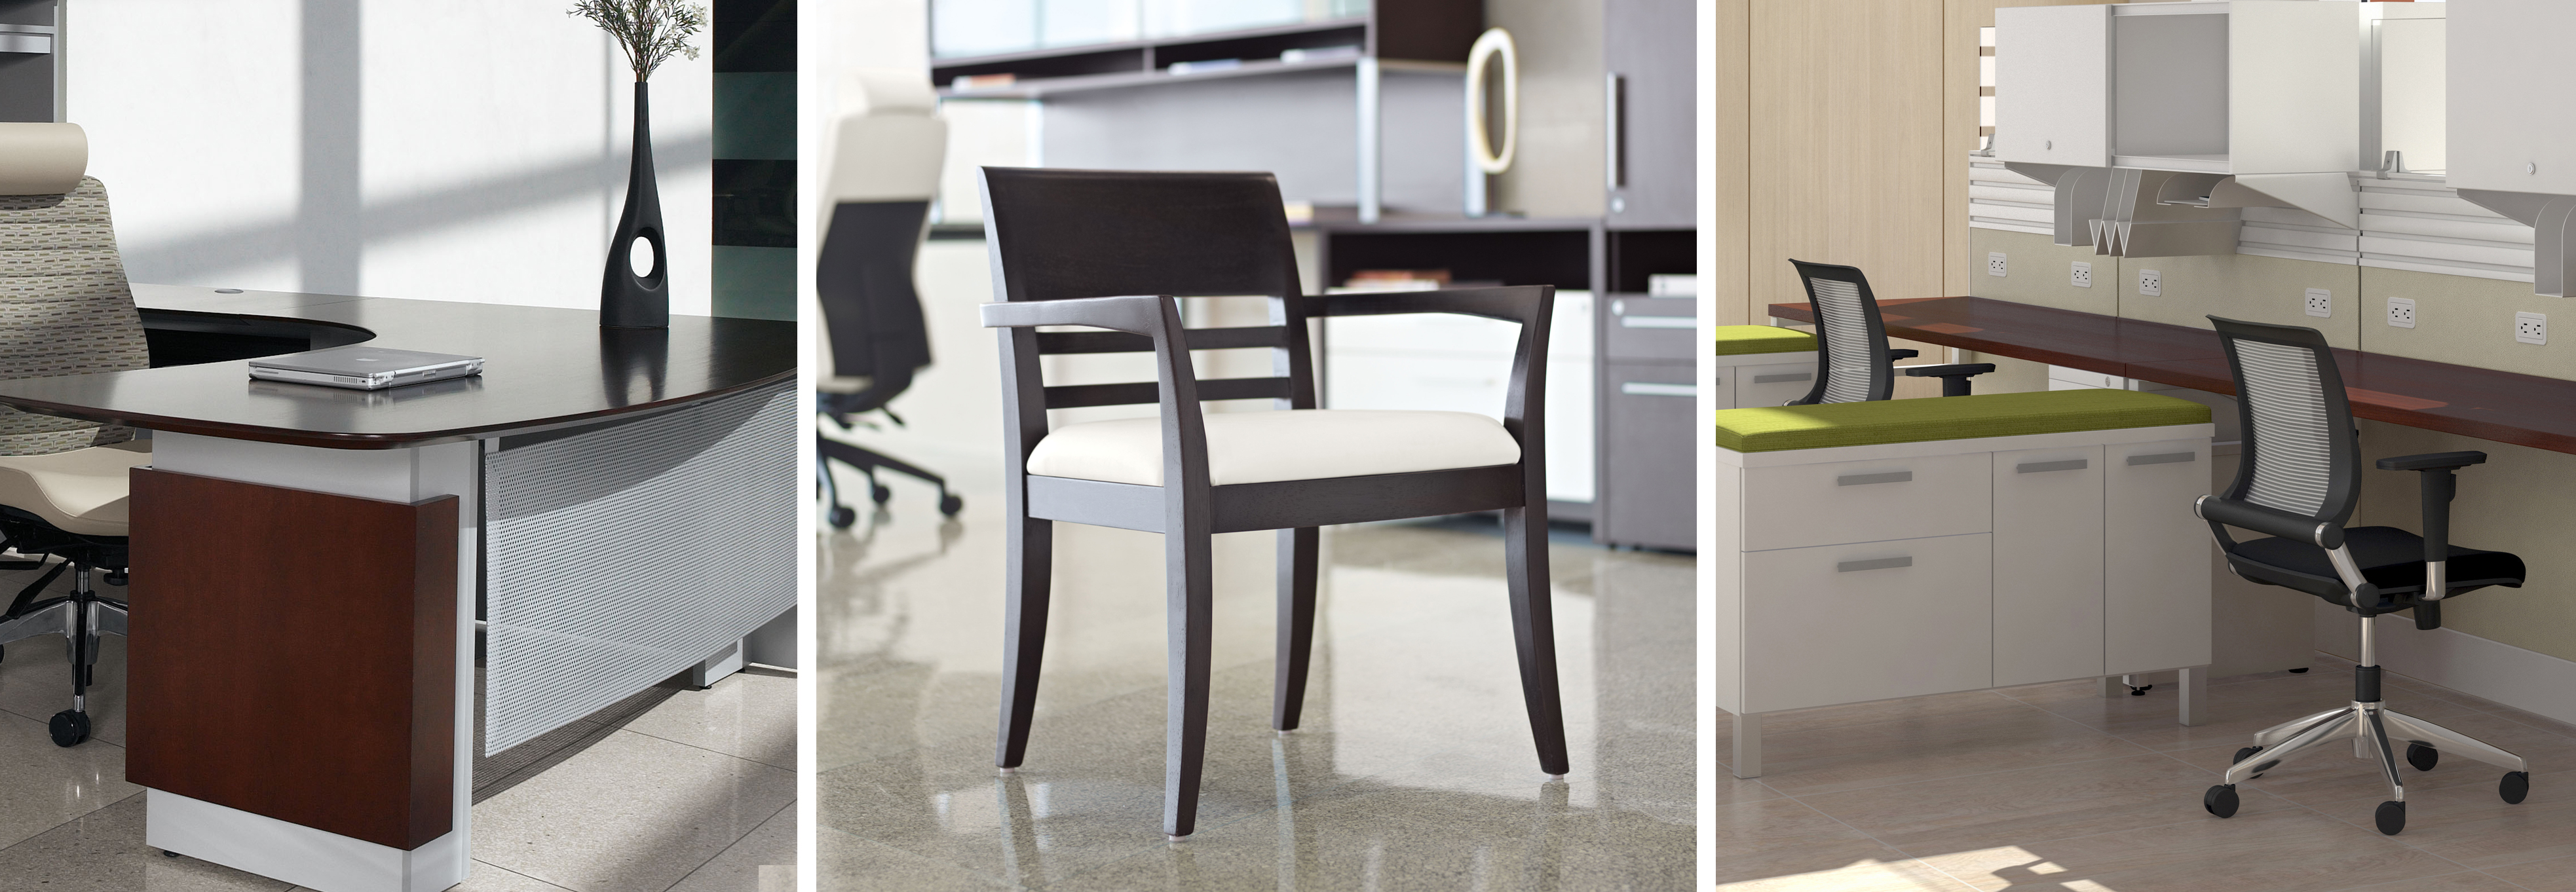 Office furniture now austin tx featured product selection for Furniture now